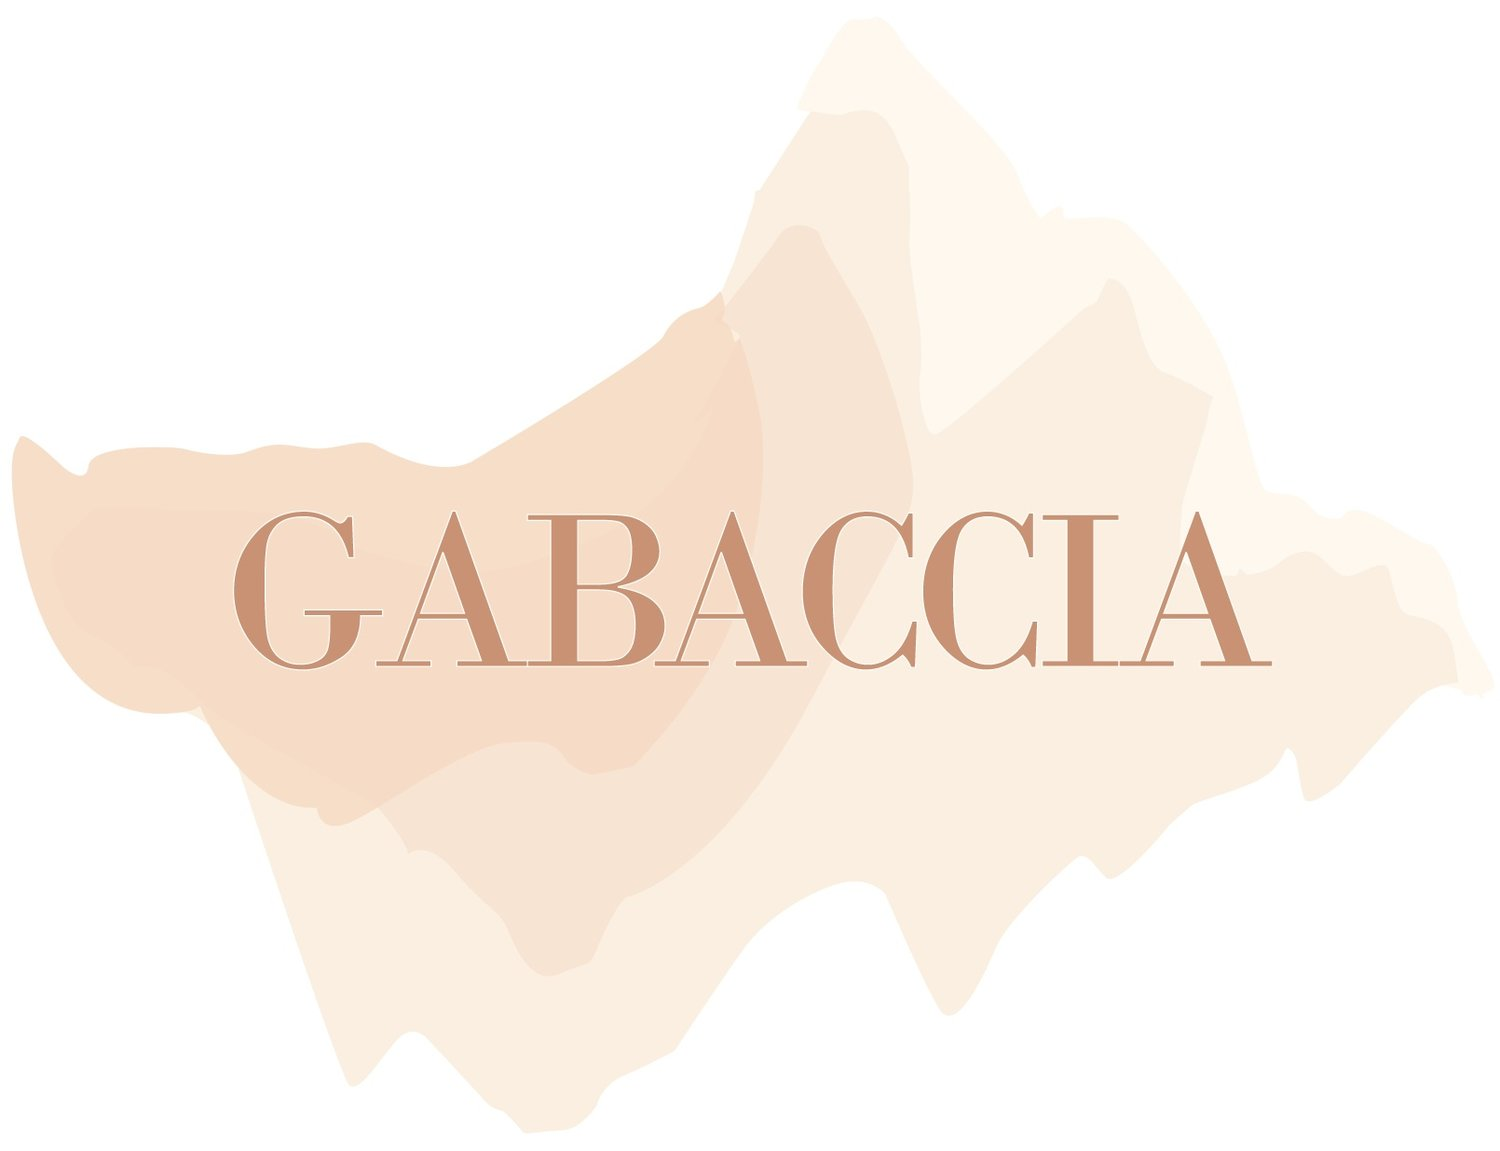 Gabaccia - Conscious Adventures and Biz